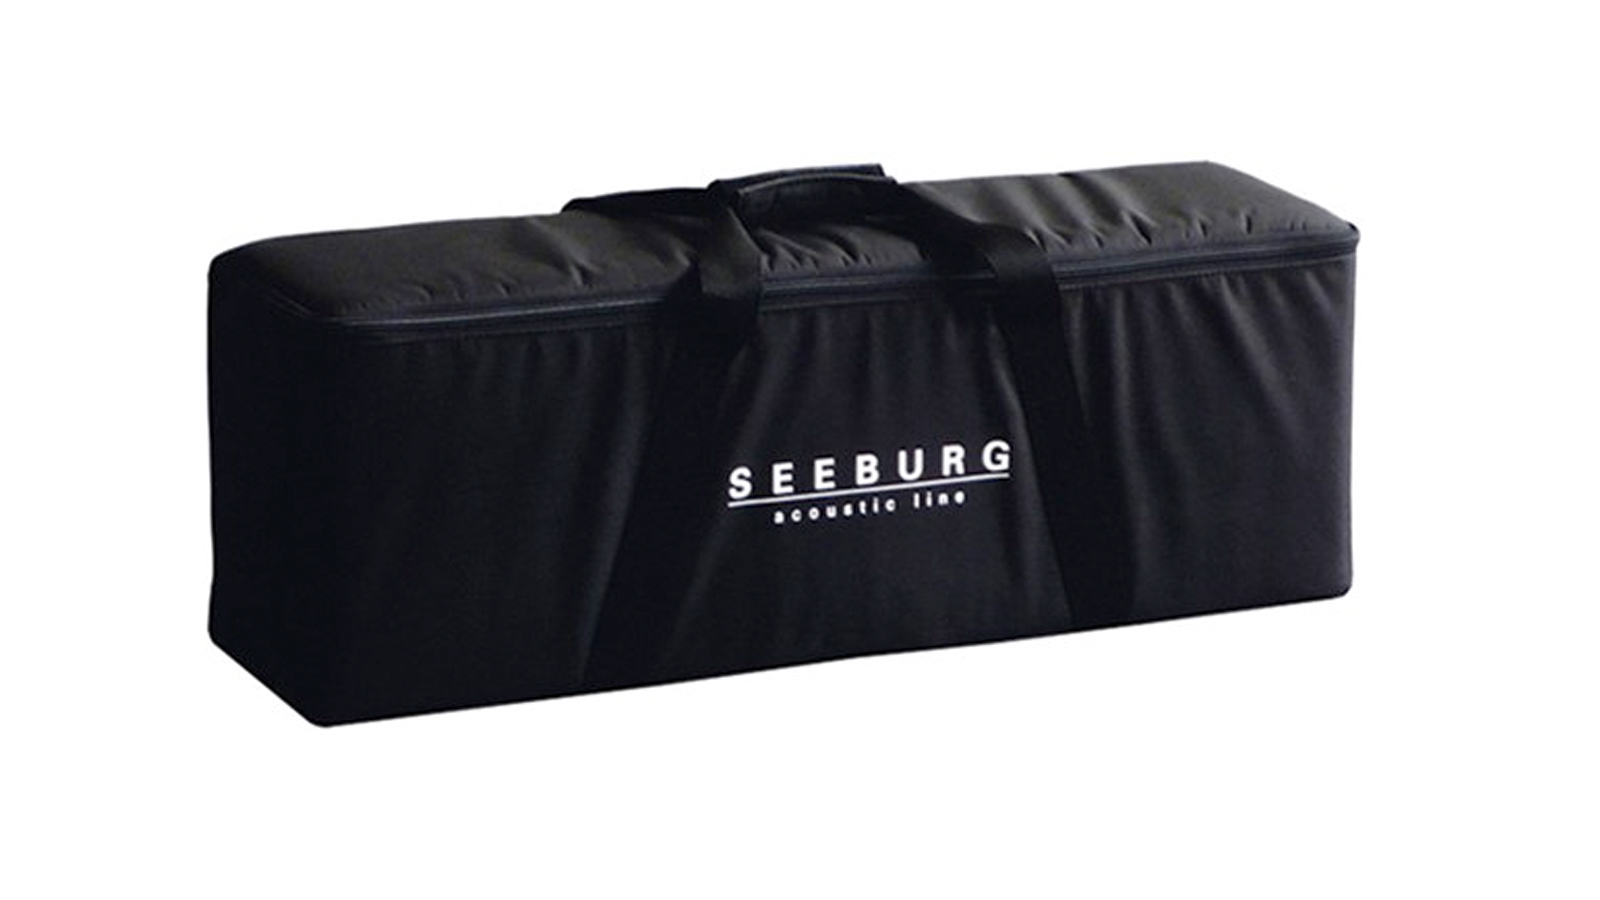 Seeburg acoustic line GL 16 Bag